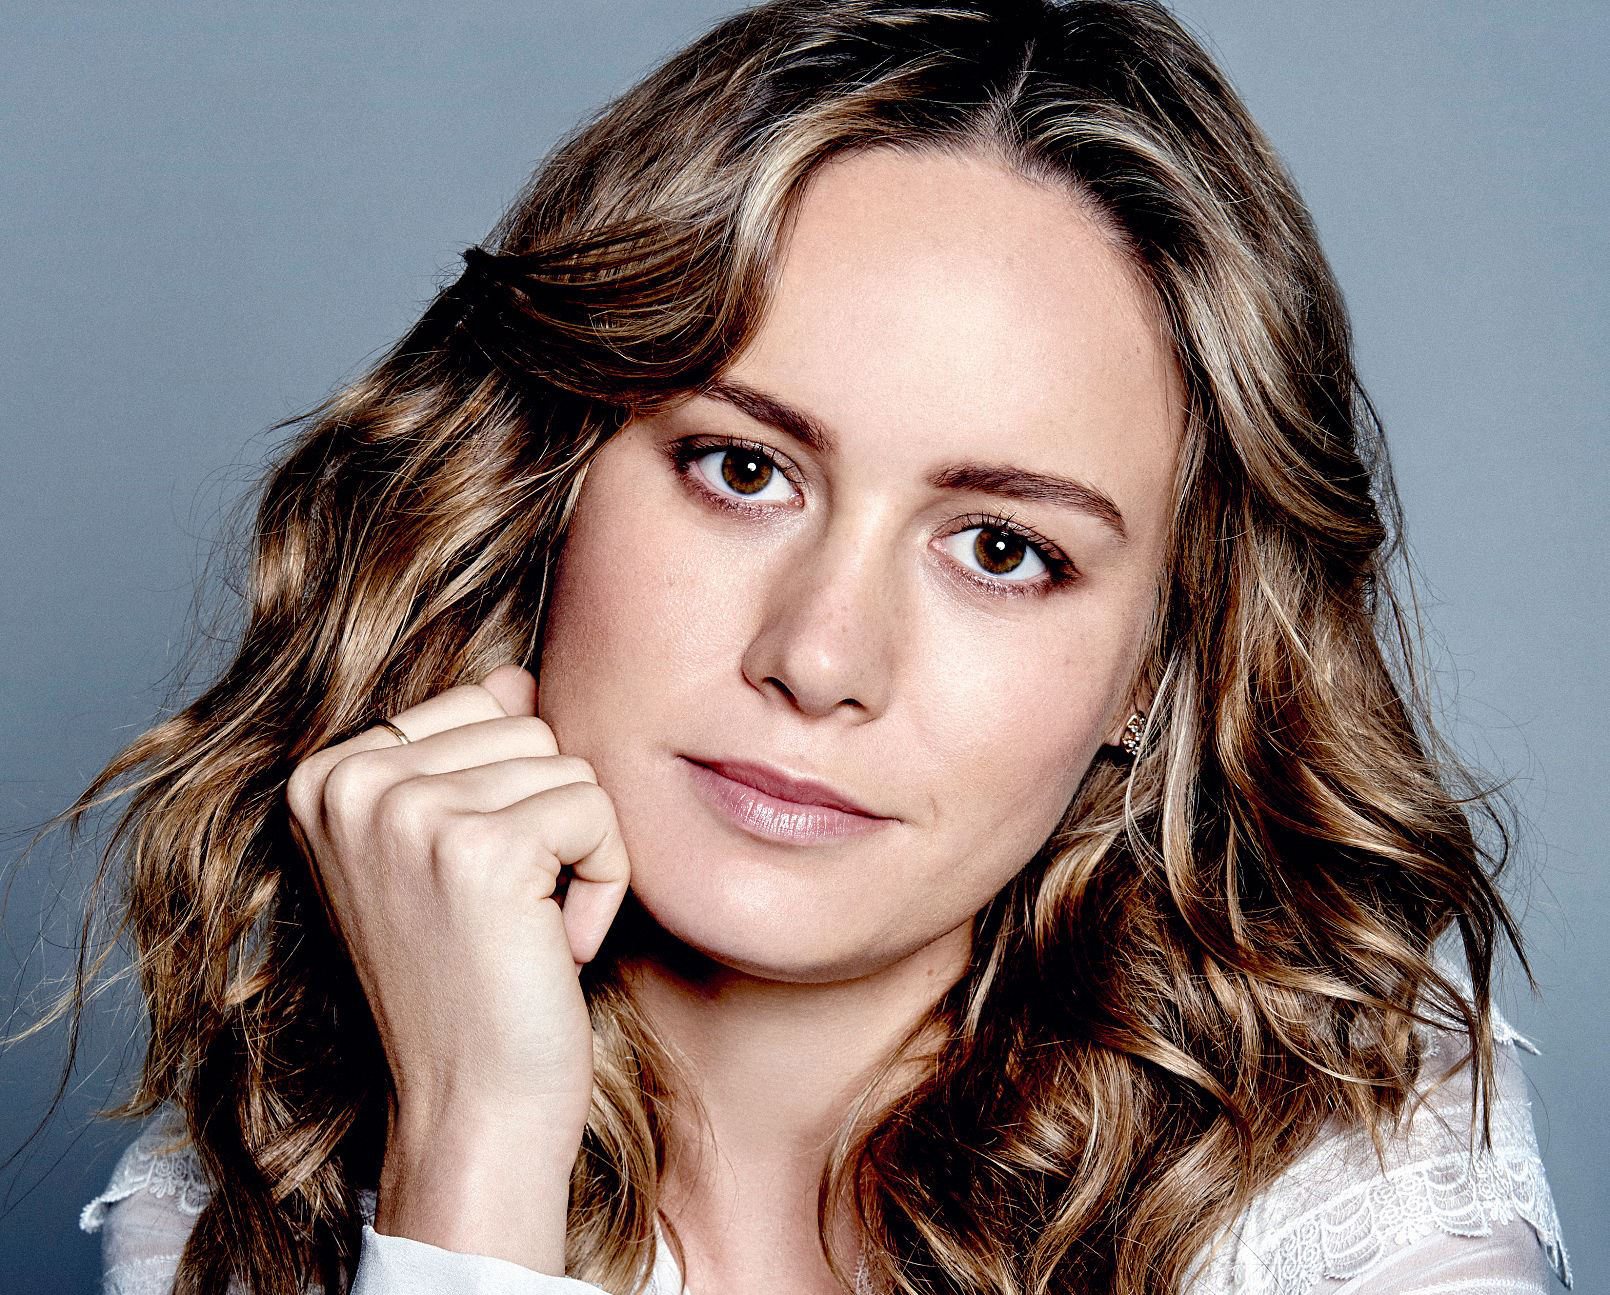 Brie Larson Gallery: Brie Larson Photo Gallery - Page #3